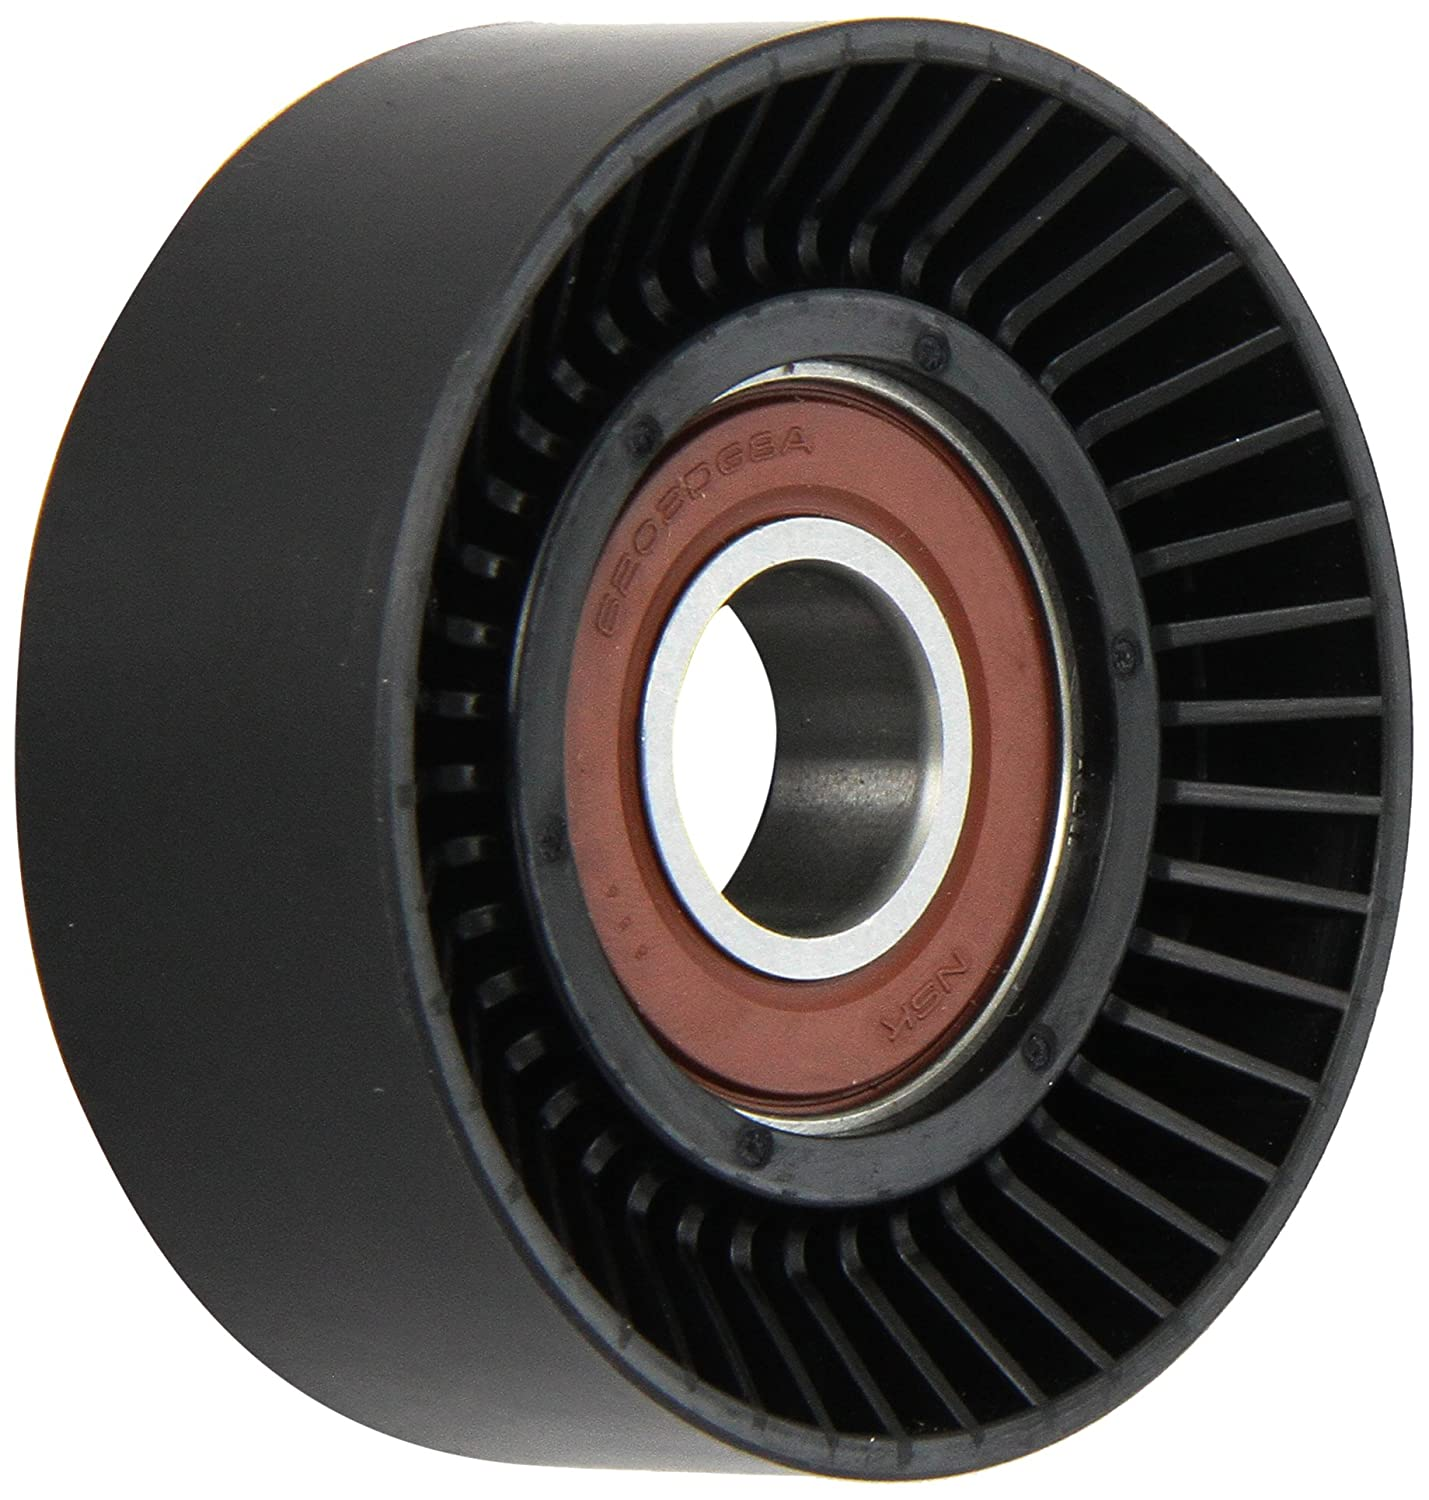 Dayco 89144 Idler Pulley Dayco Automotive